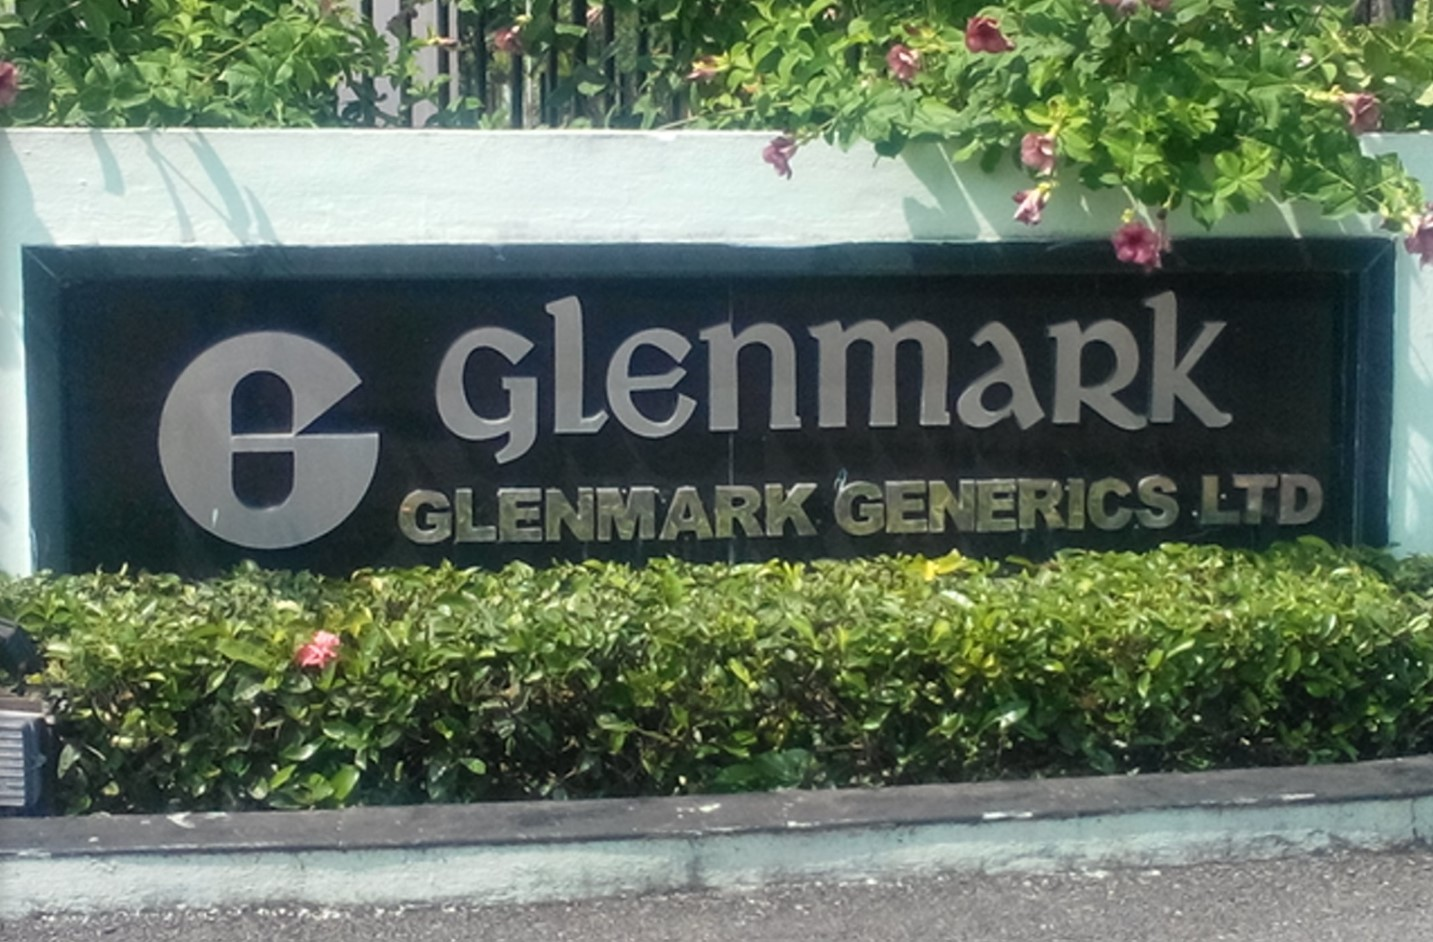 Glenmark says Favipiravir trial shows 29% faster recovery in COVID-19